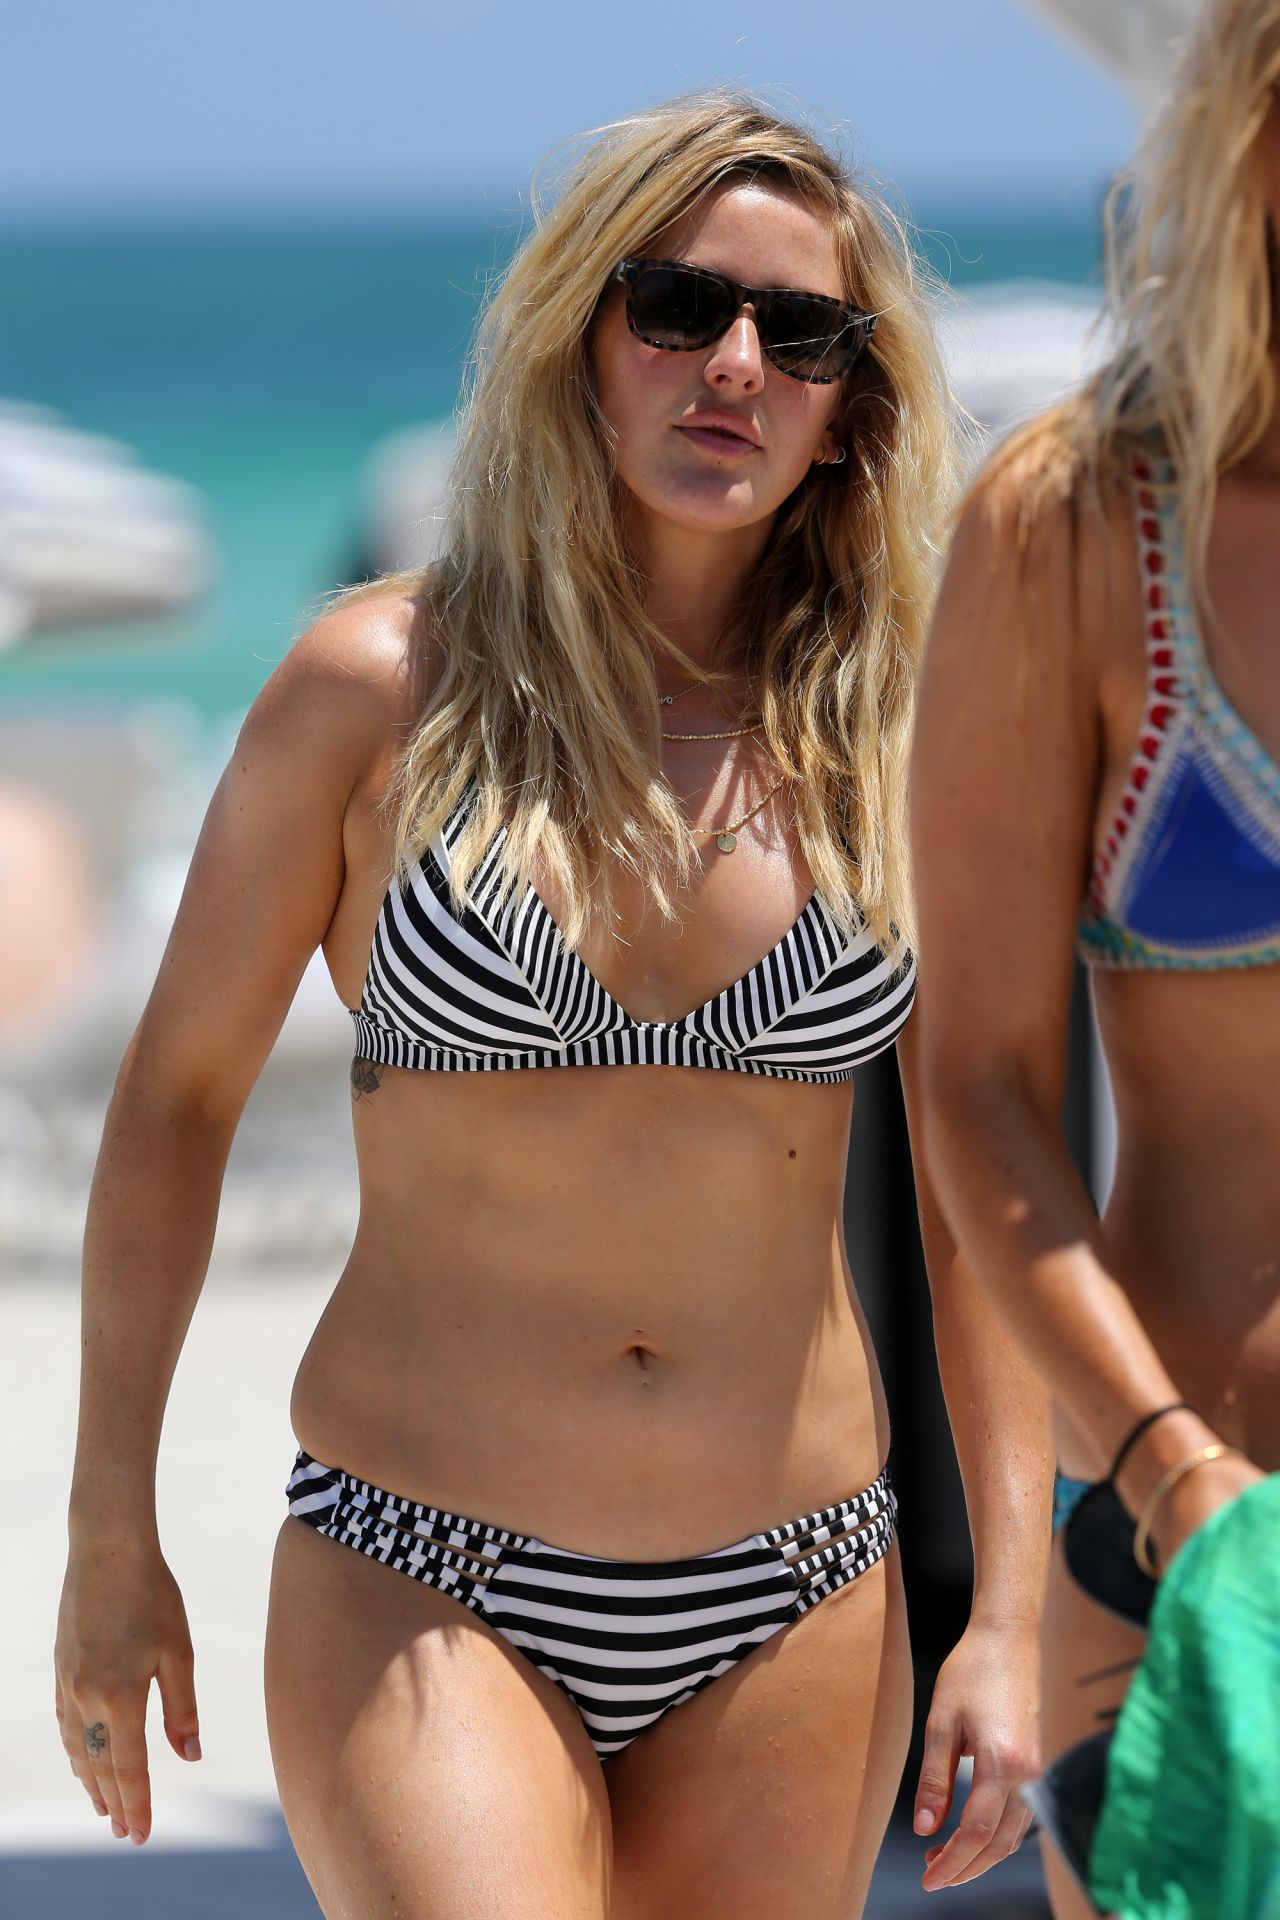 Bikini Ellie Goulding nudes (91 foto and video), Sexy, Is a cute, Instagram, lingerie 2015